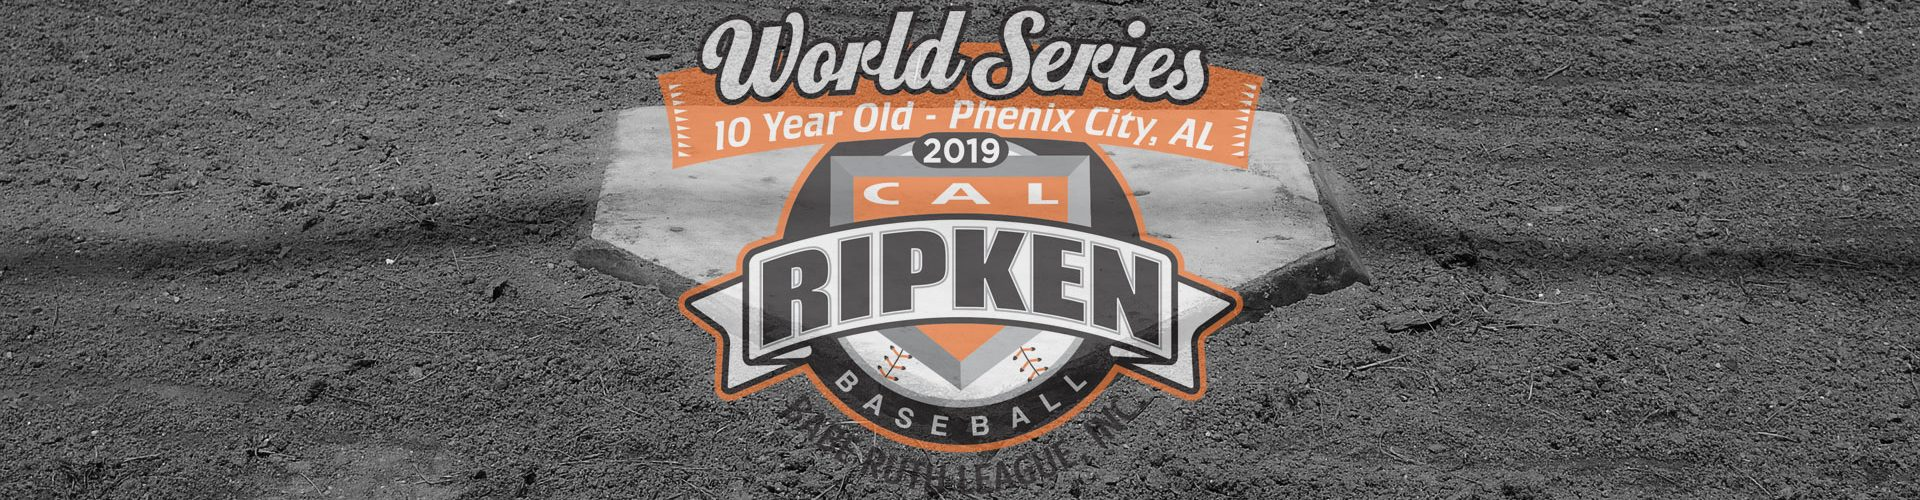 Cal Ripken World Series - Phenix City, Alabama | 2019 Cal Ripken 10U